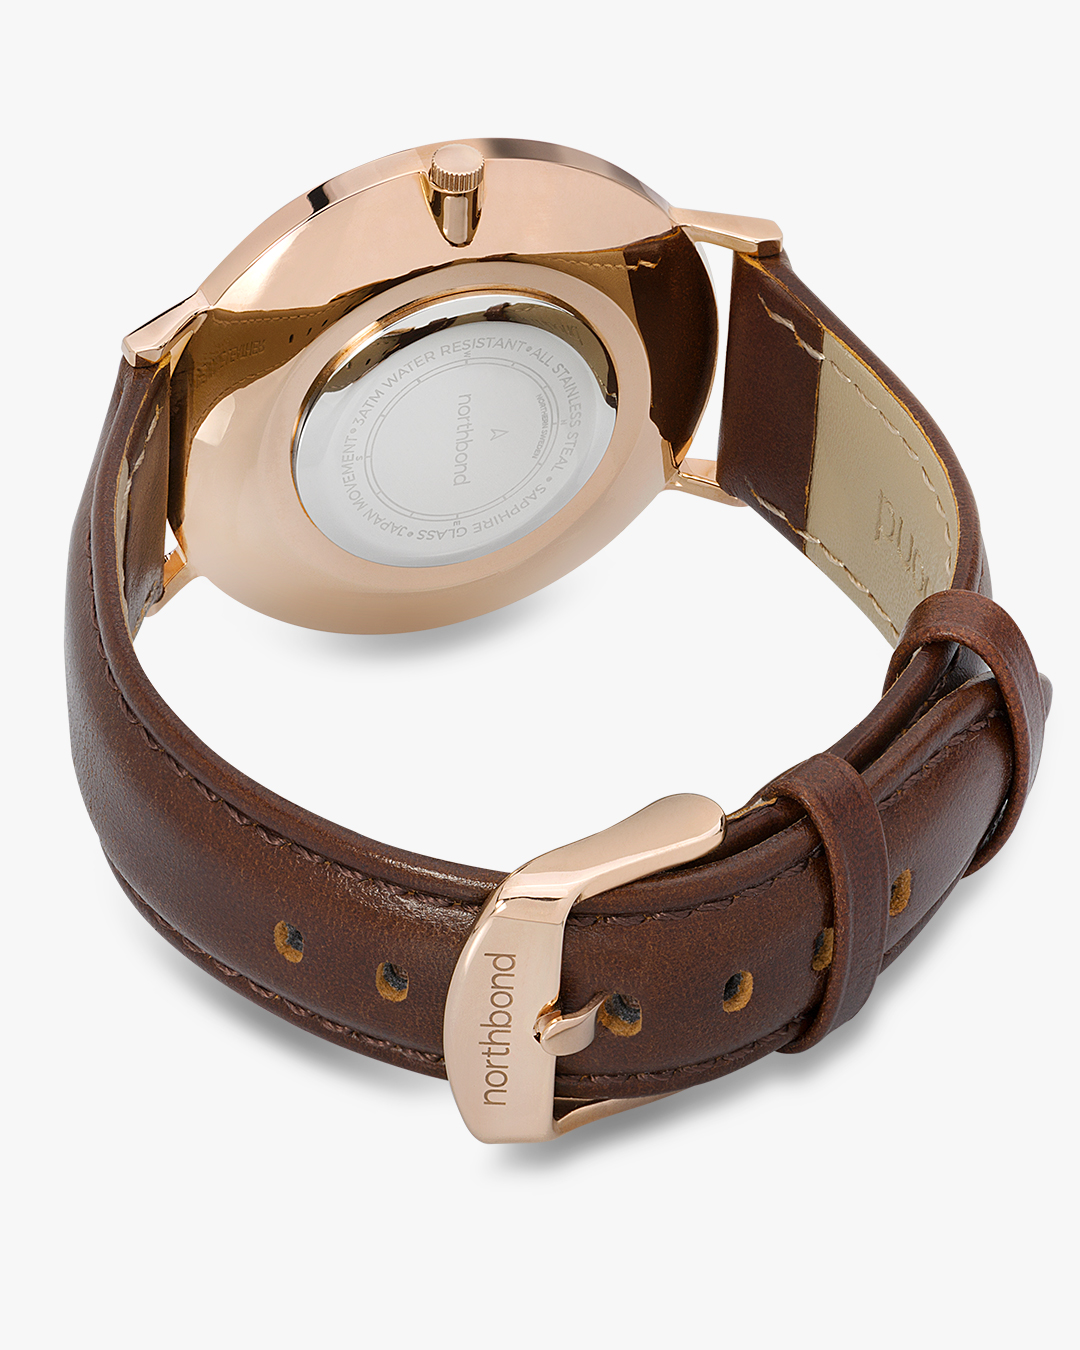 sail watch rose gold brown leather